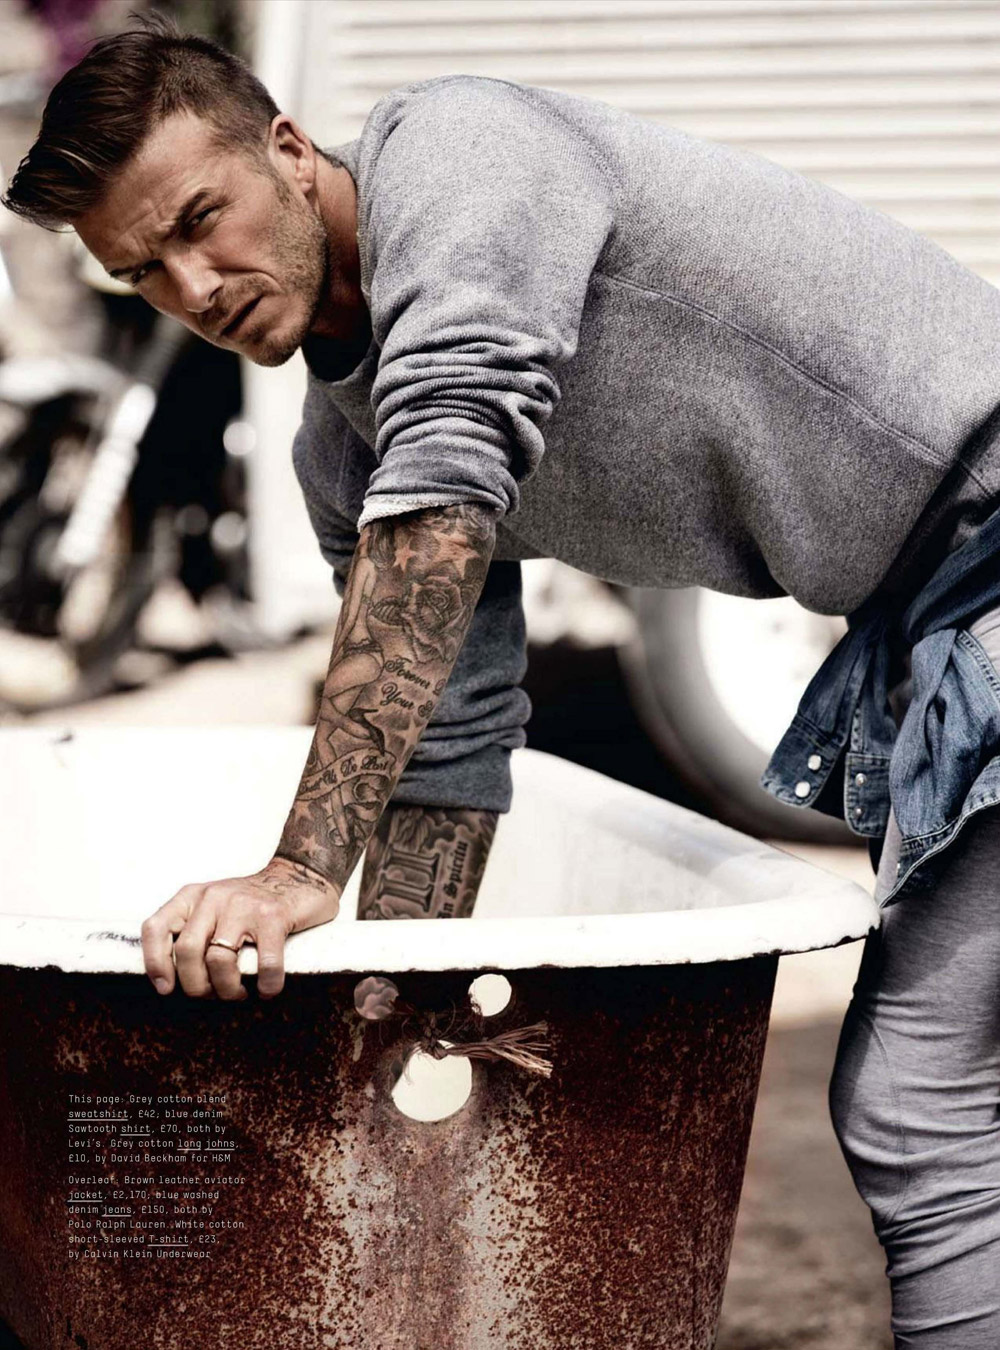 david-beckham-esquire-uk-september-2012-08.jpg